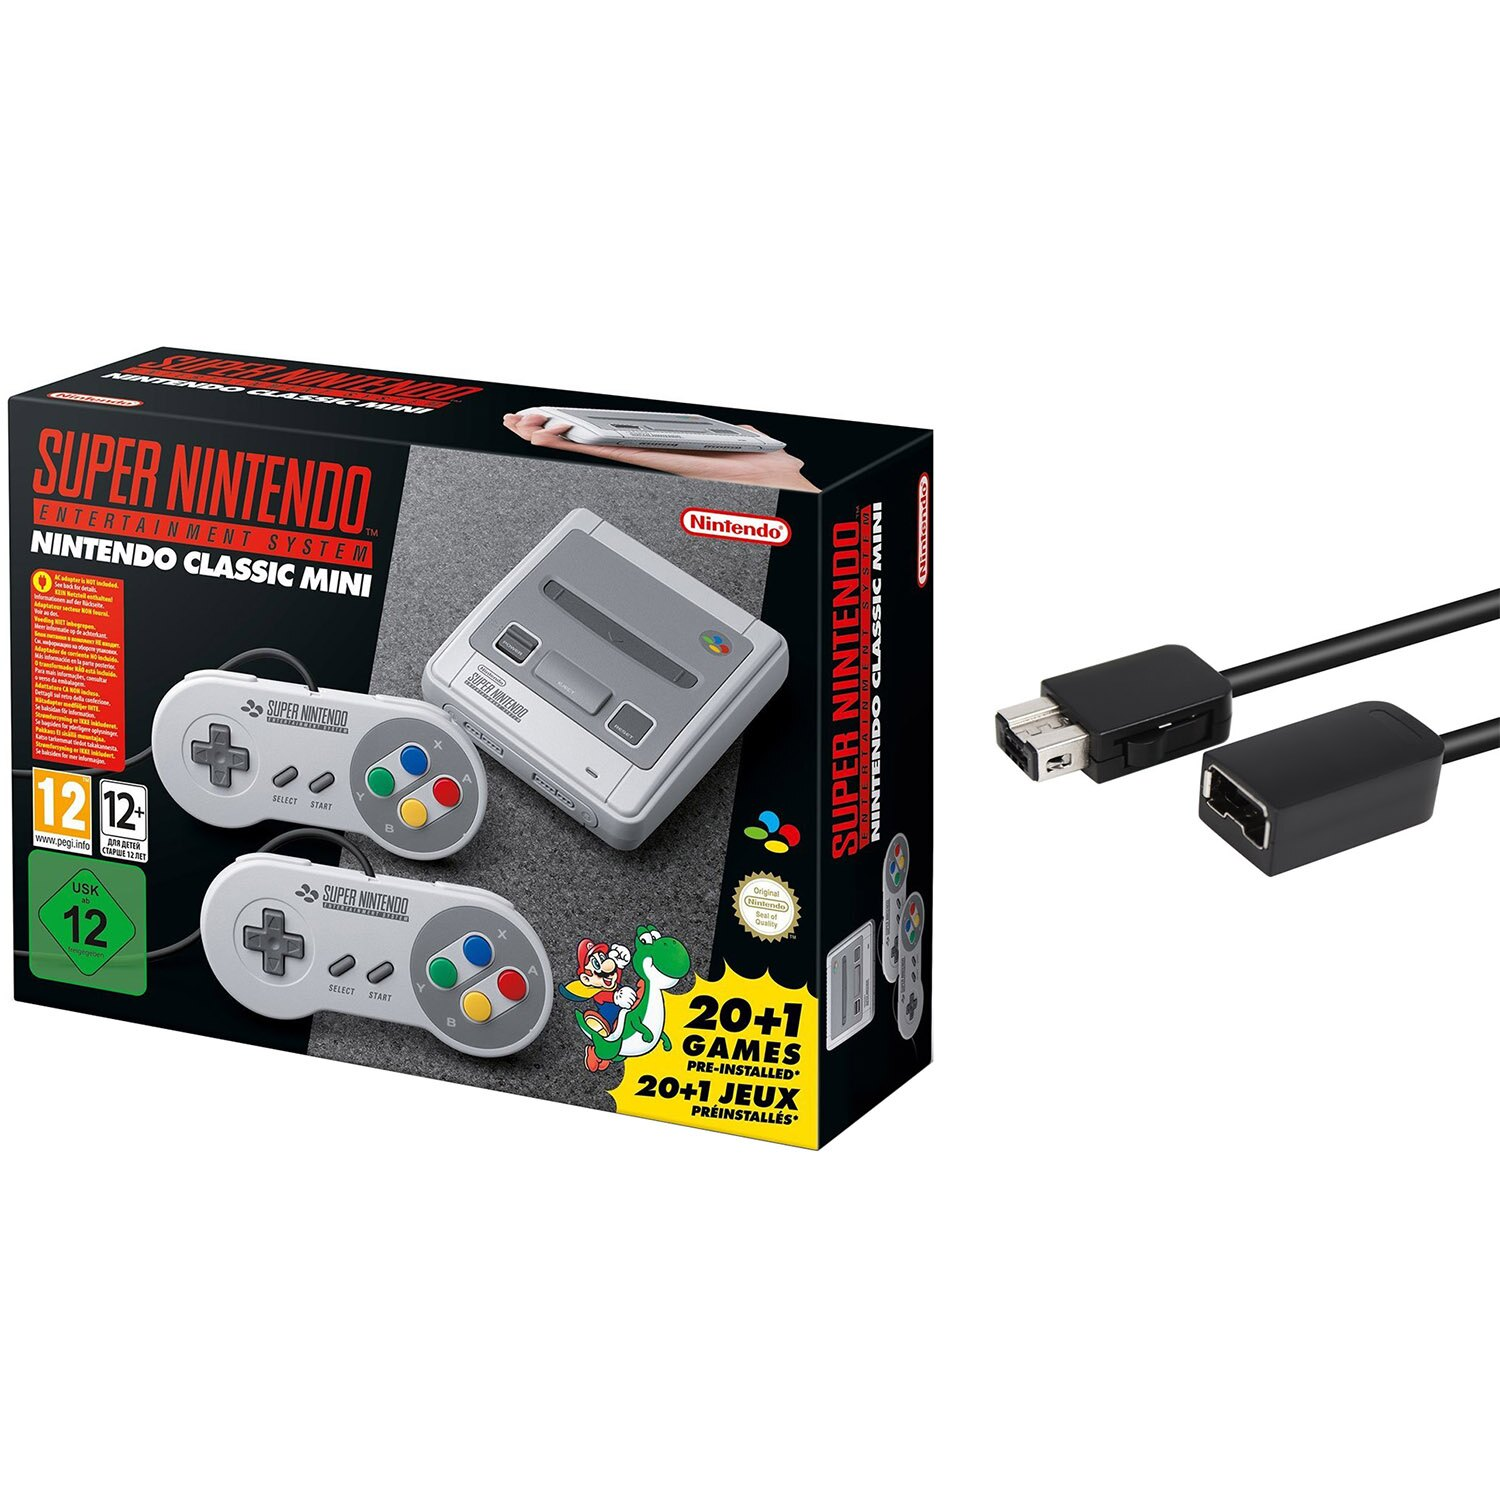 Super Nintendo Entertainment System SNES Classic Edition w/ 6ft. Extension Cable 0